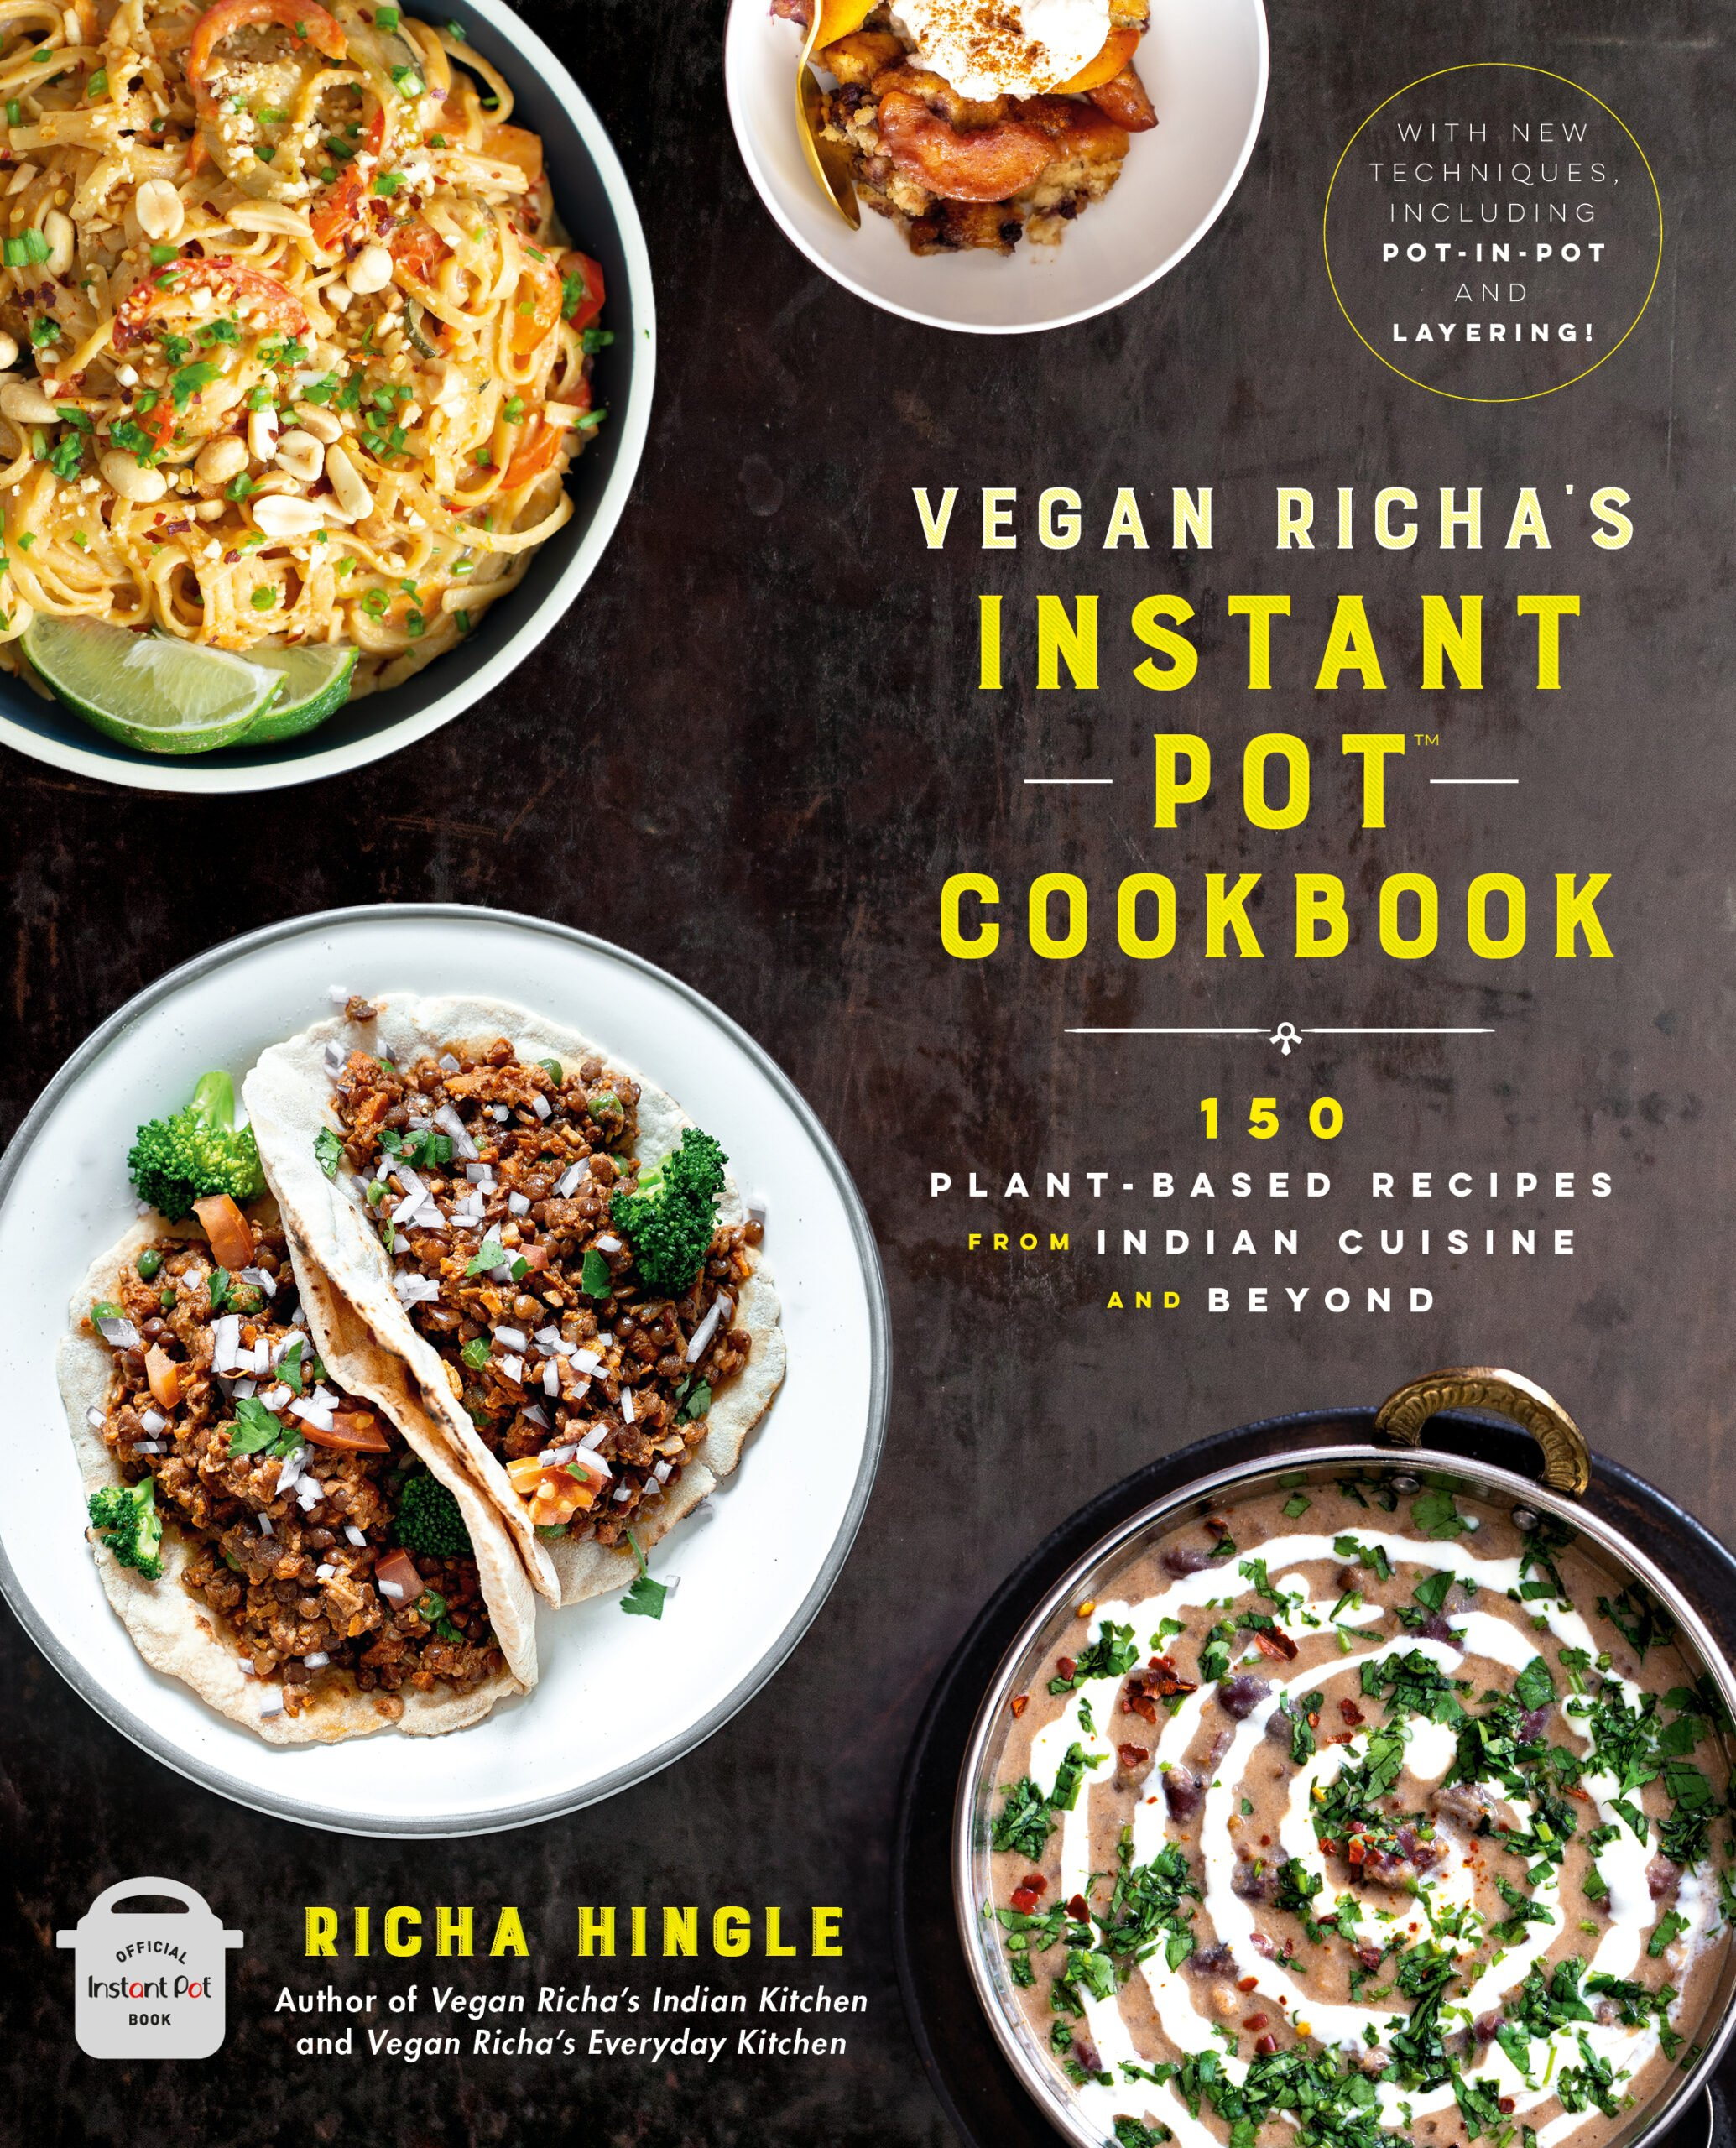 Vegan Richa's Instant Pot Cookbook Cover Reveal and Preorder links